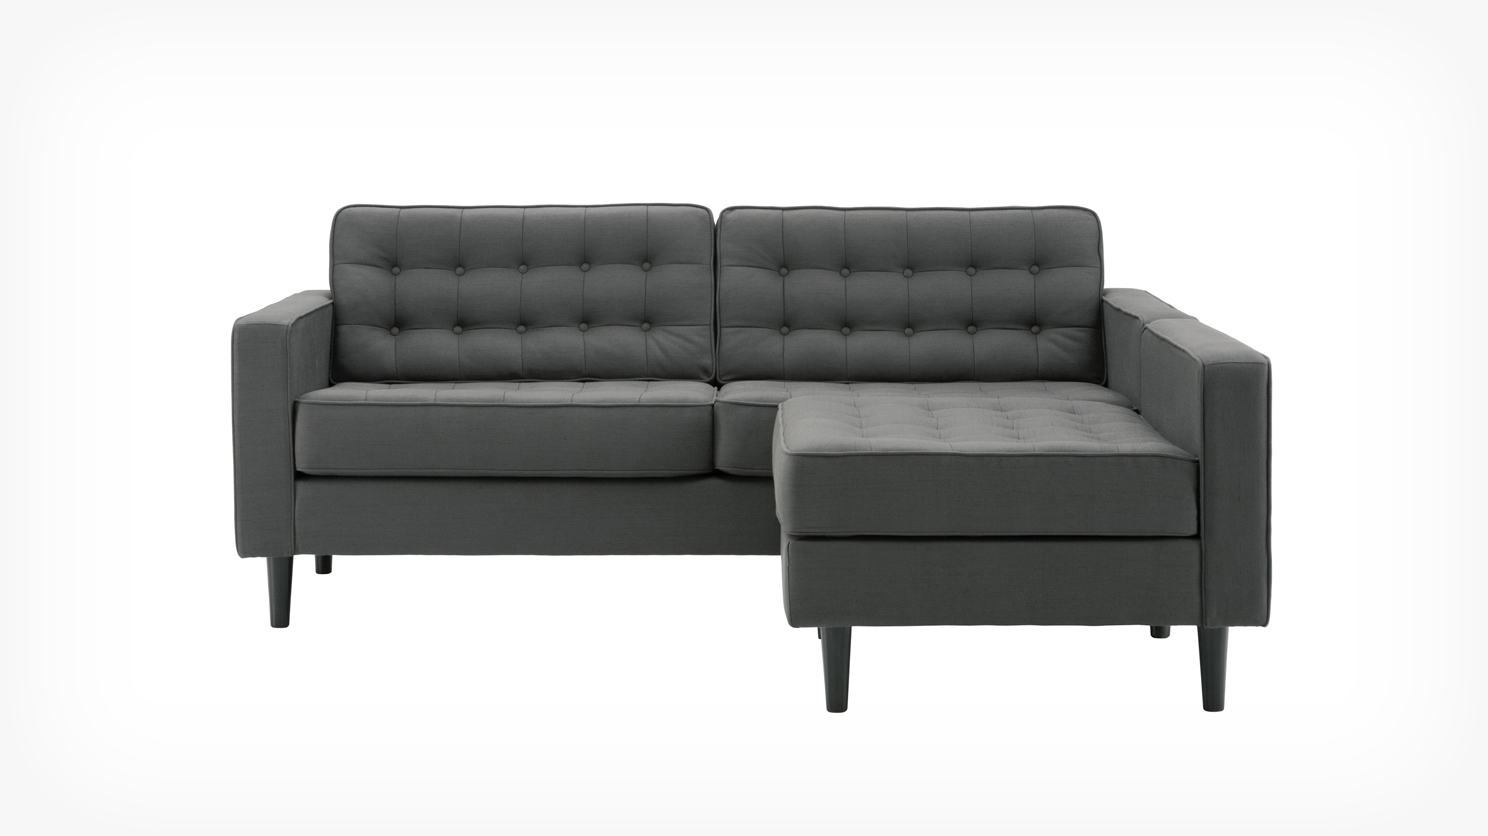 Eq3 Reverie Apartment 2 Piece Sectional Sofa With Chaise Fabric Inside Apartment Sofa Sectional (Image 11 of 15)